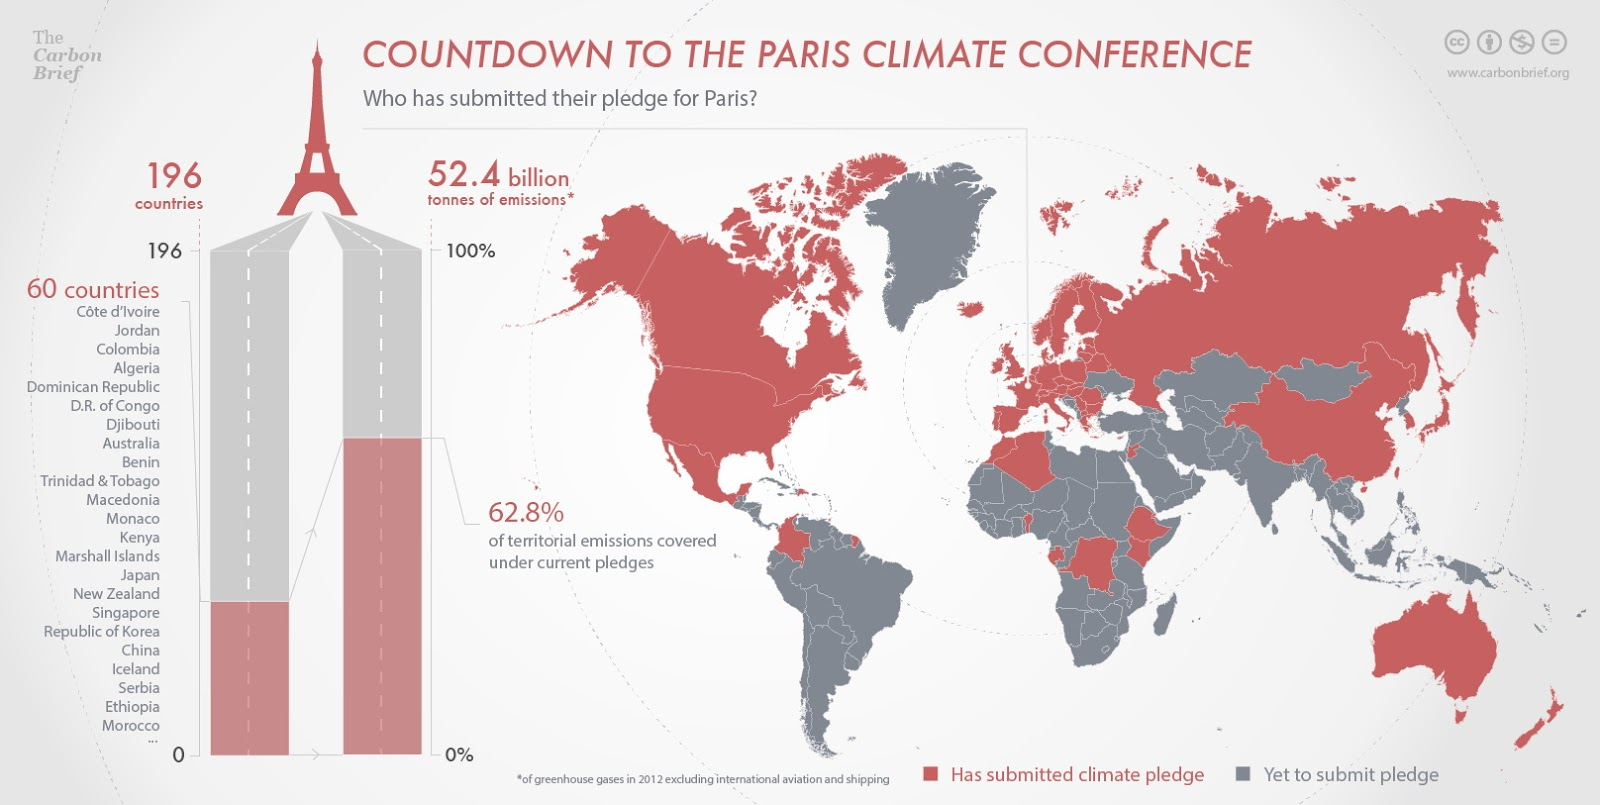 Countdown to the Paris climate conference